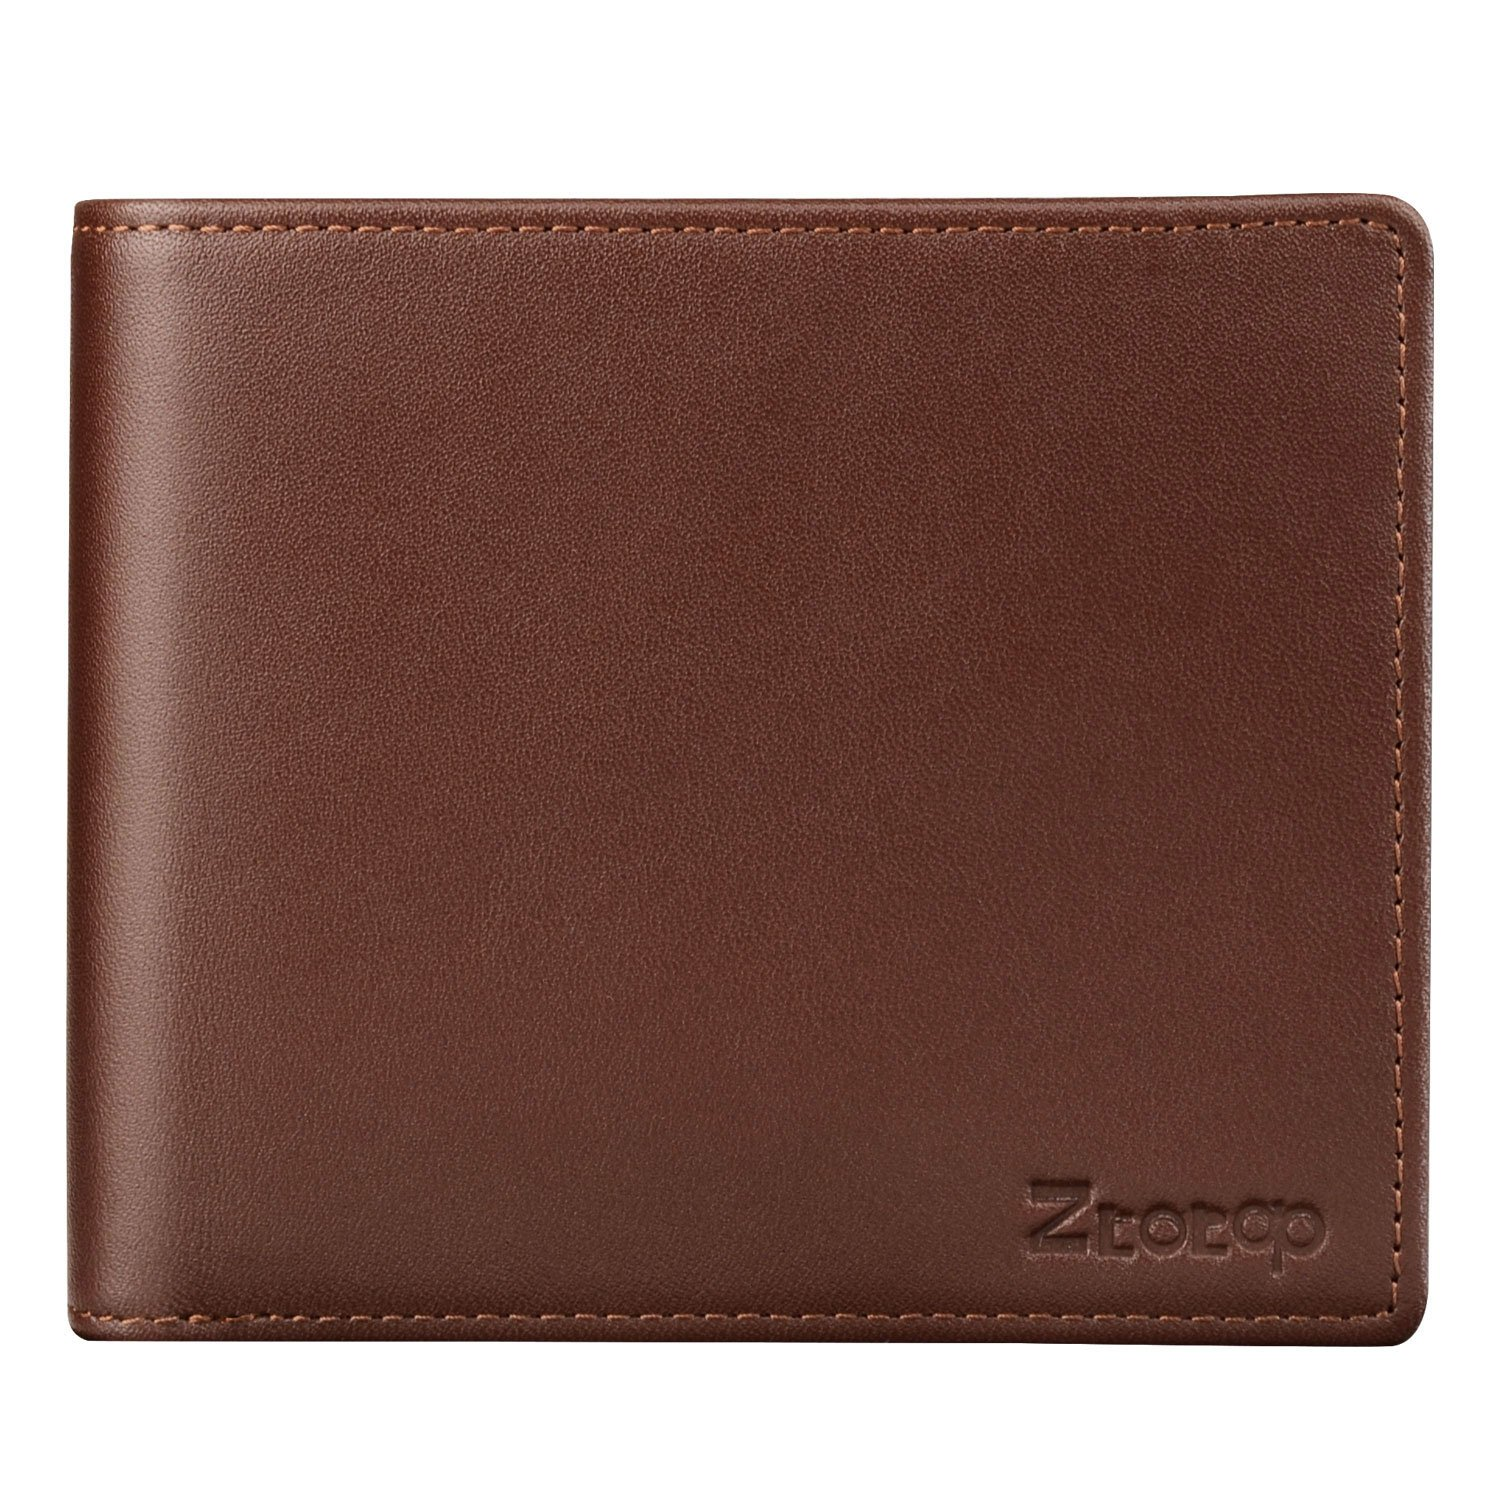 Mens Wallet Leather, Ztotop Slim Bifold RFID Blocking Wallet with 2 ID Window